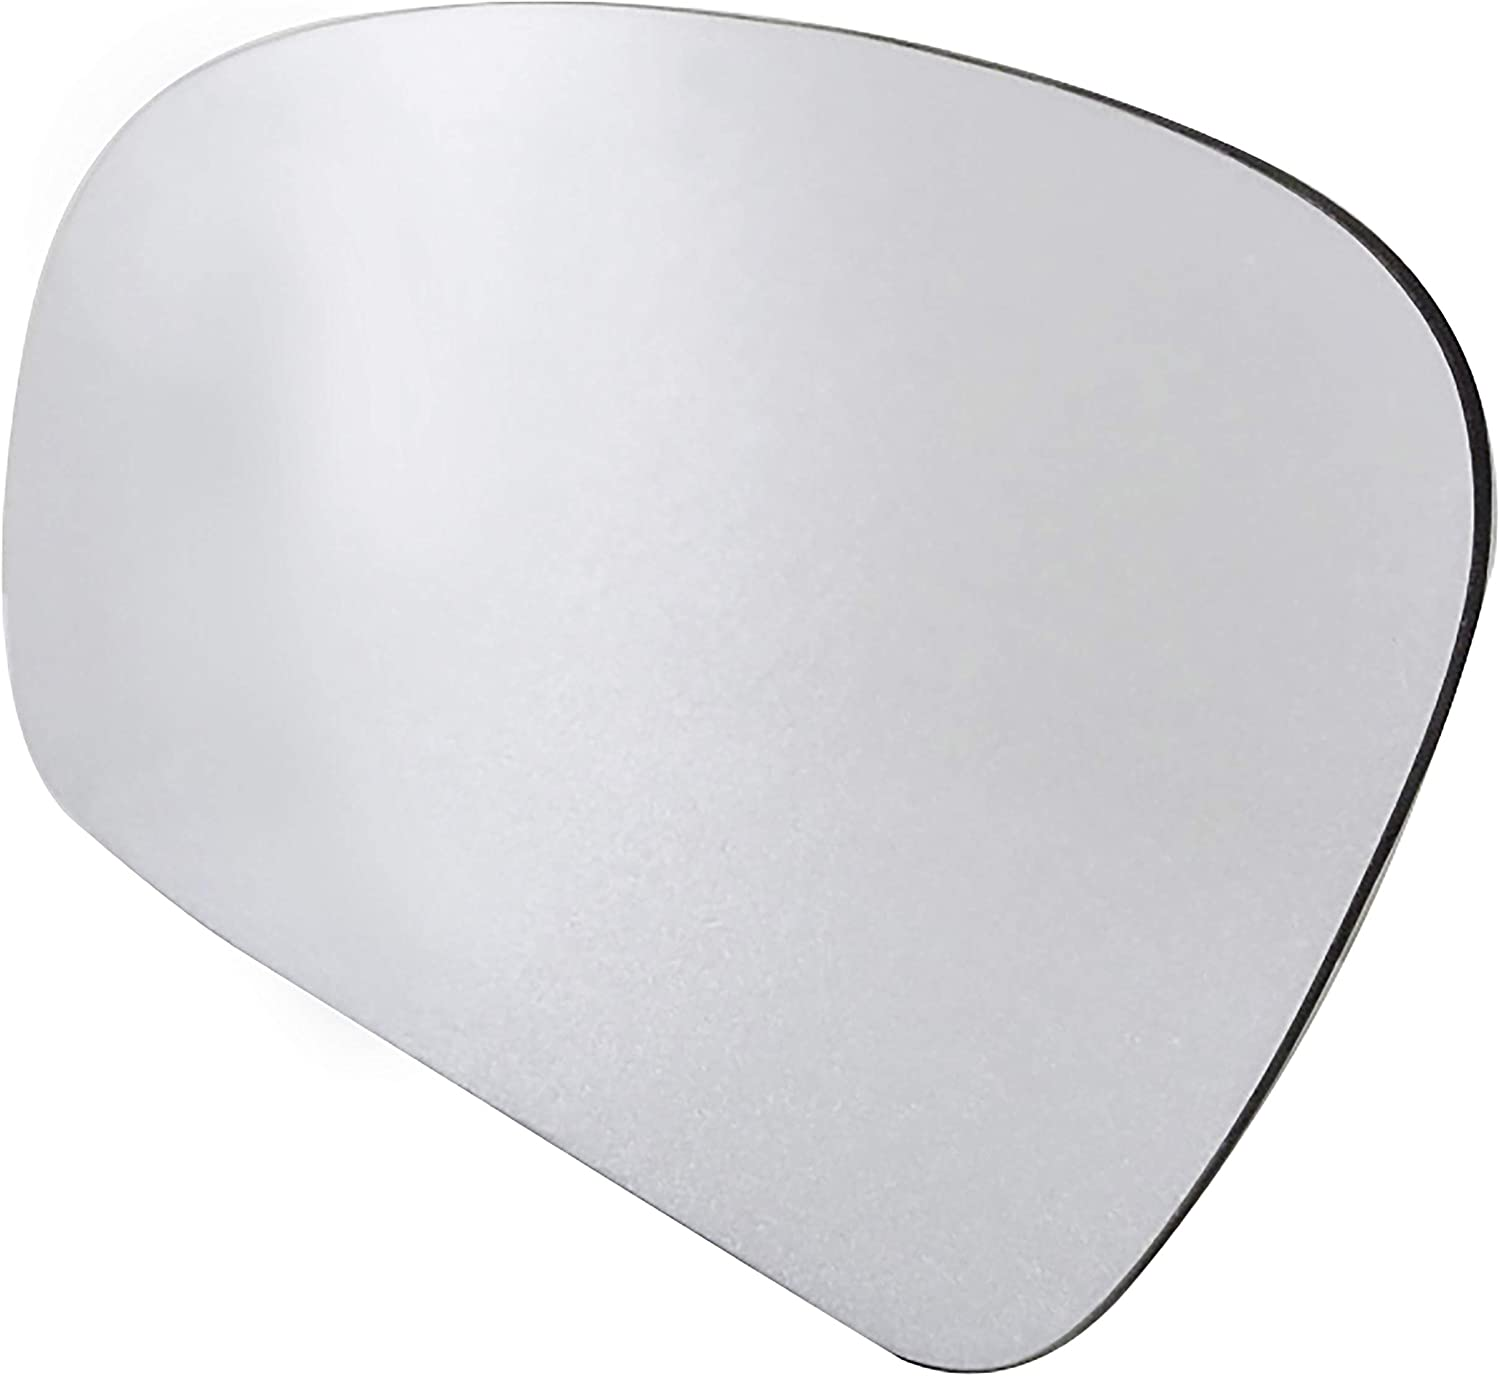 Dorman 56830 Driver Side Door Glass Al sold out. Mirror for Recommendation Volkswagen Select